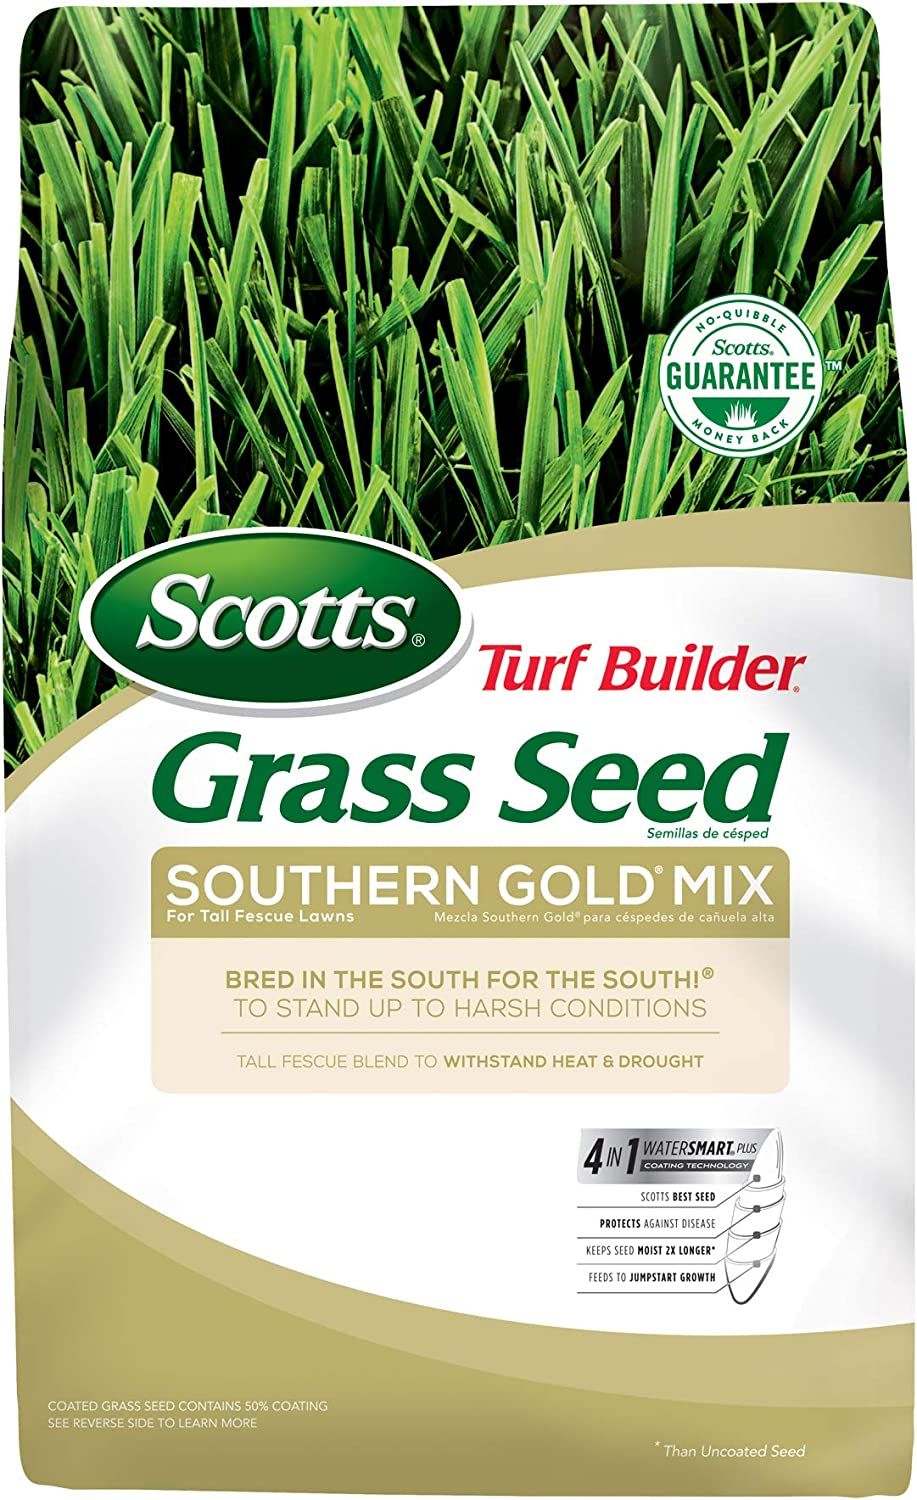 Scotts Turf Builder Grass Seed Southern San Francisco Mall Gold Tall Fescue Mix Max 73% OFF For